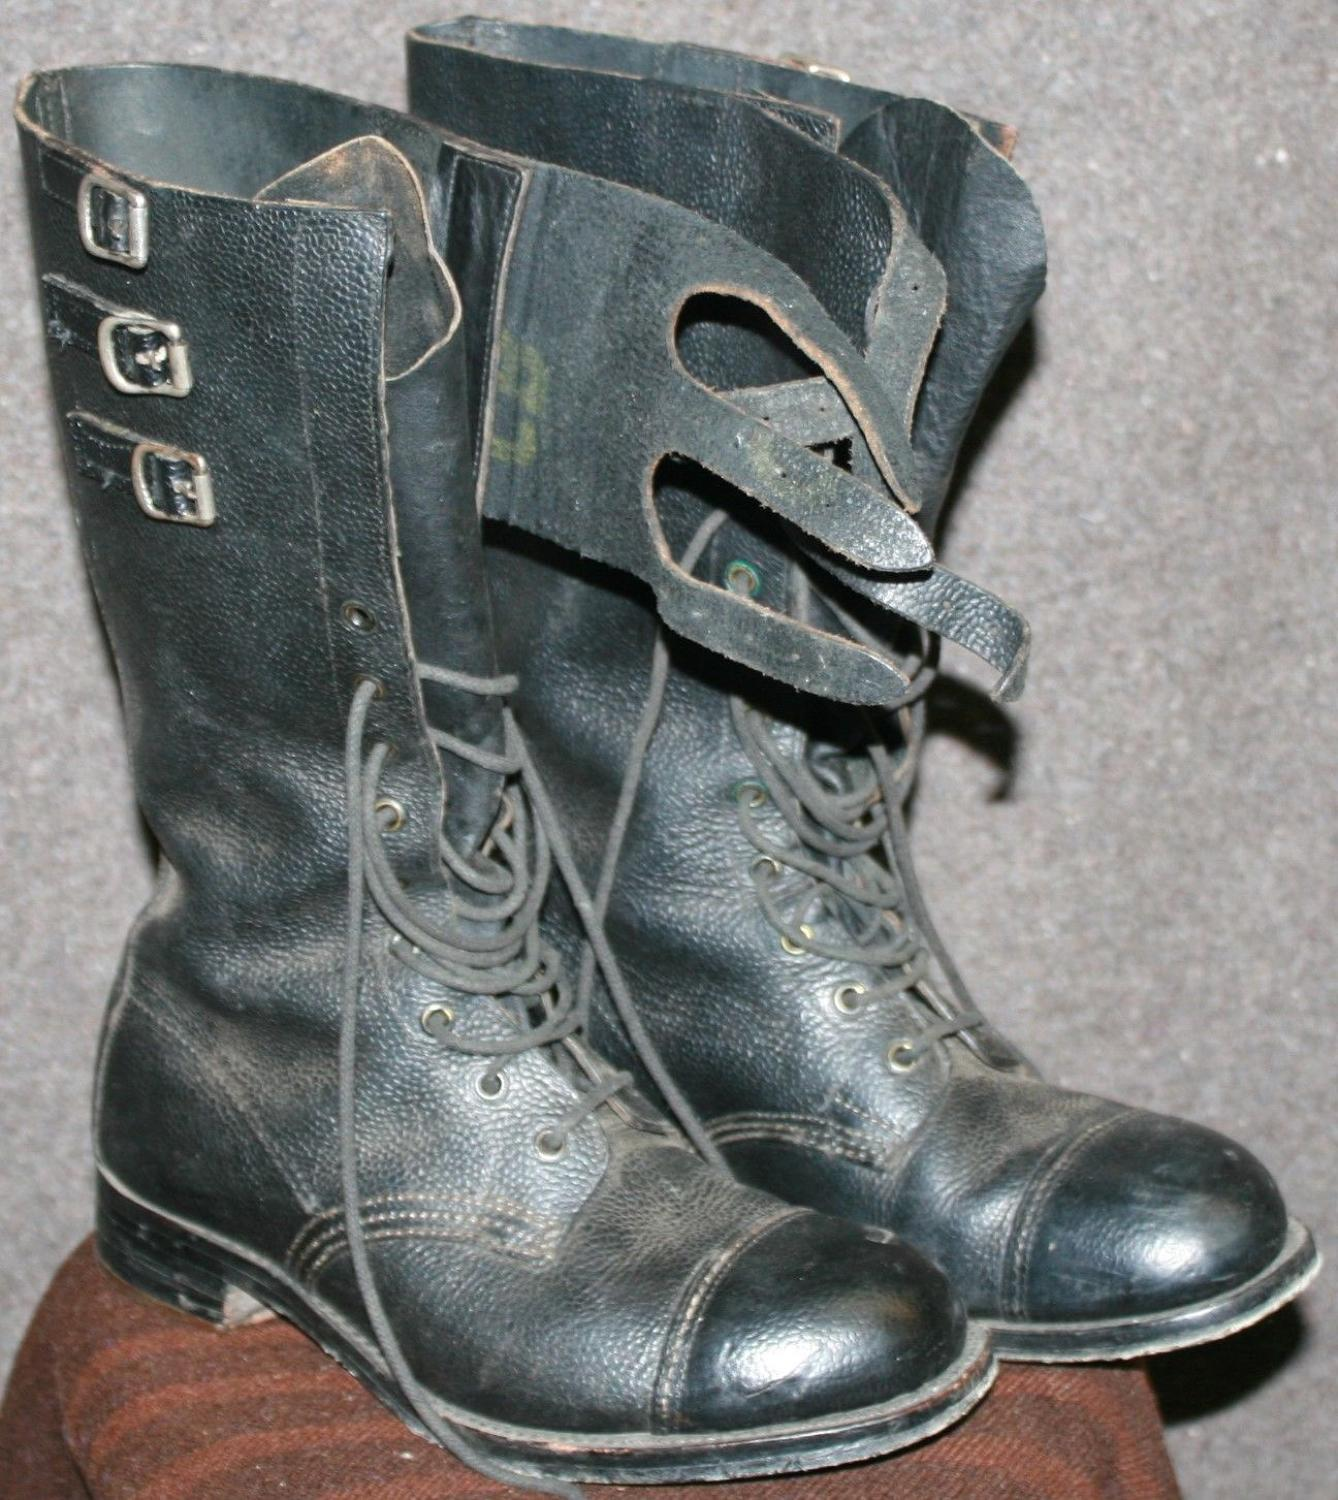 A PAIR OF DISPATCH RIDERS BOOTS SIZE 8 M